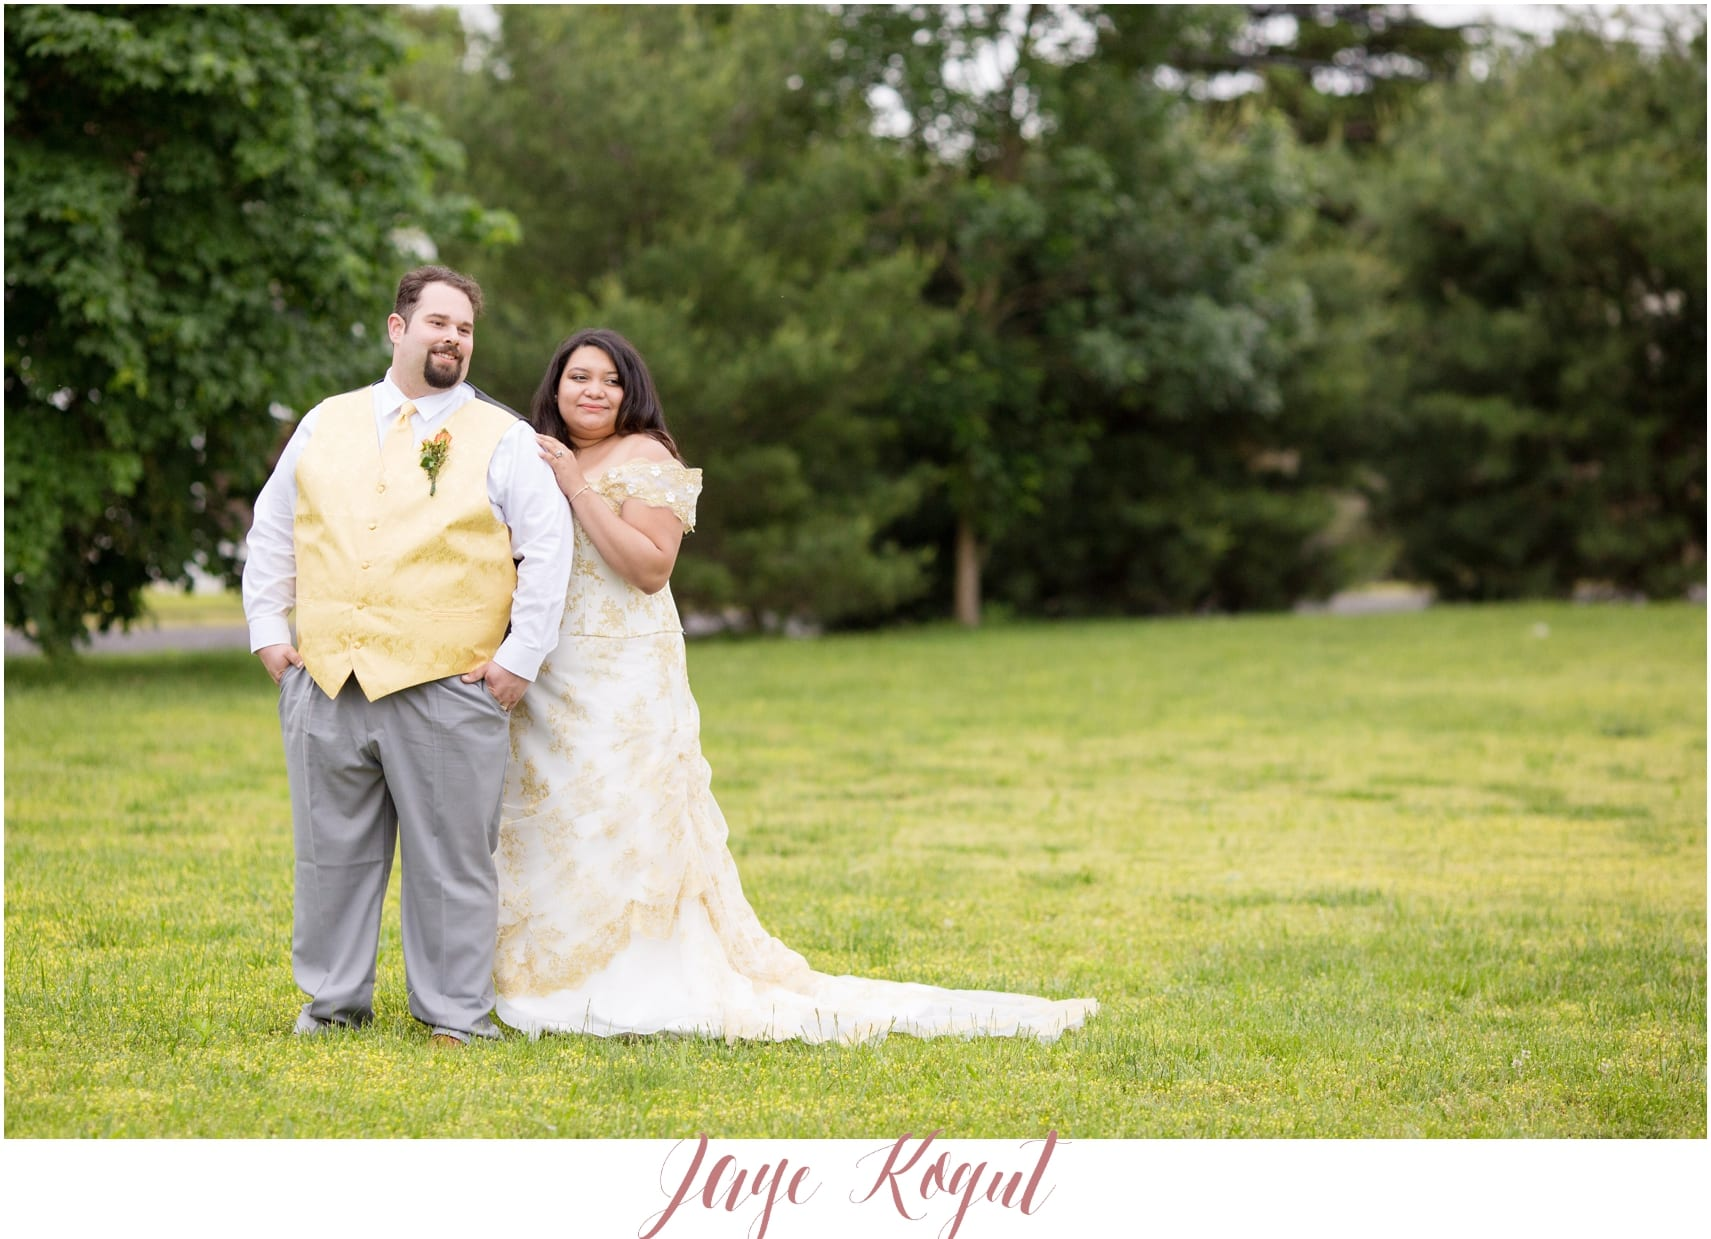 Lord Of The Rings Wedding by Jaye Kogut Photography